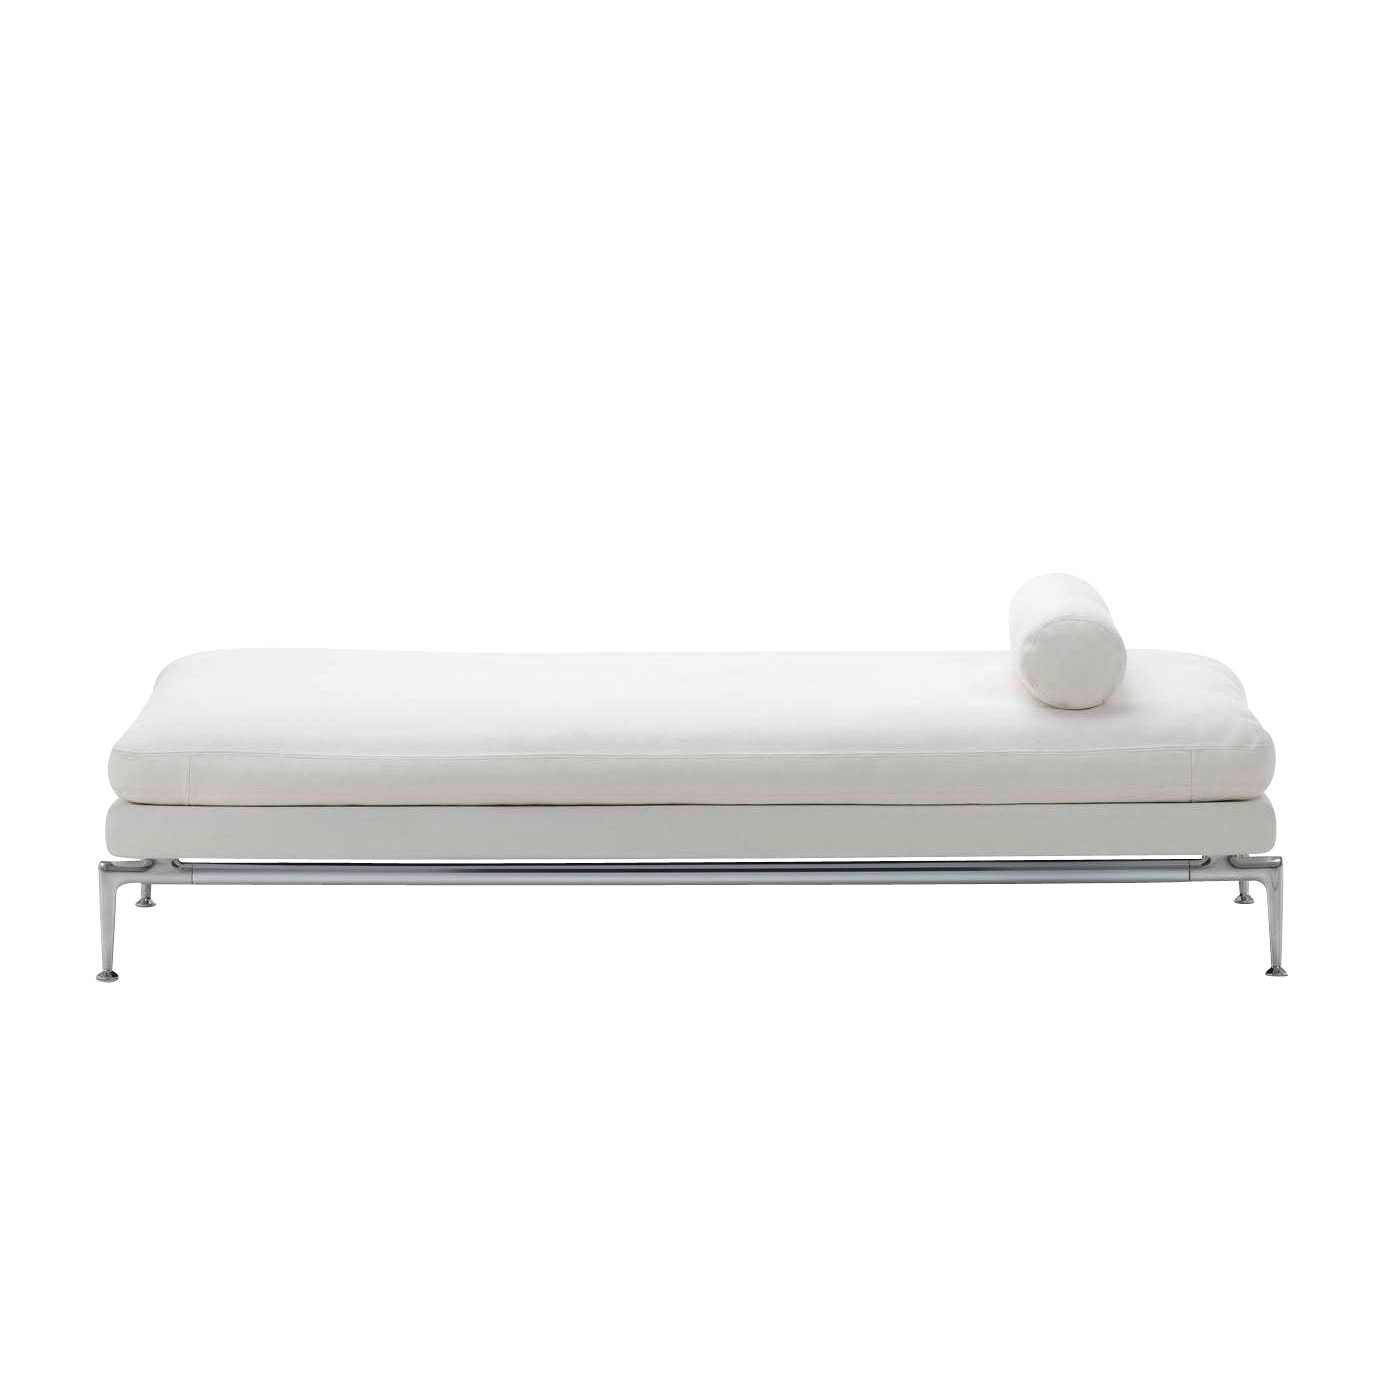 Vitra Suita Citterio Daybed Ambientedirect